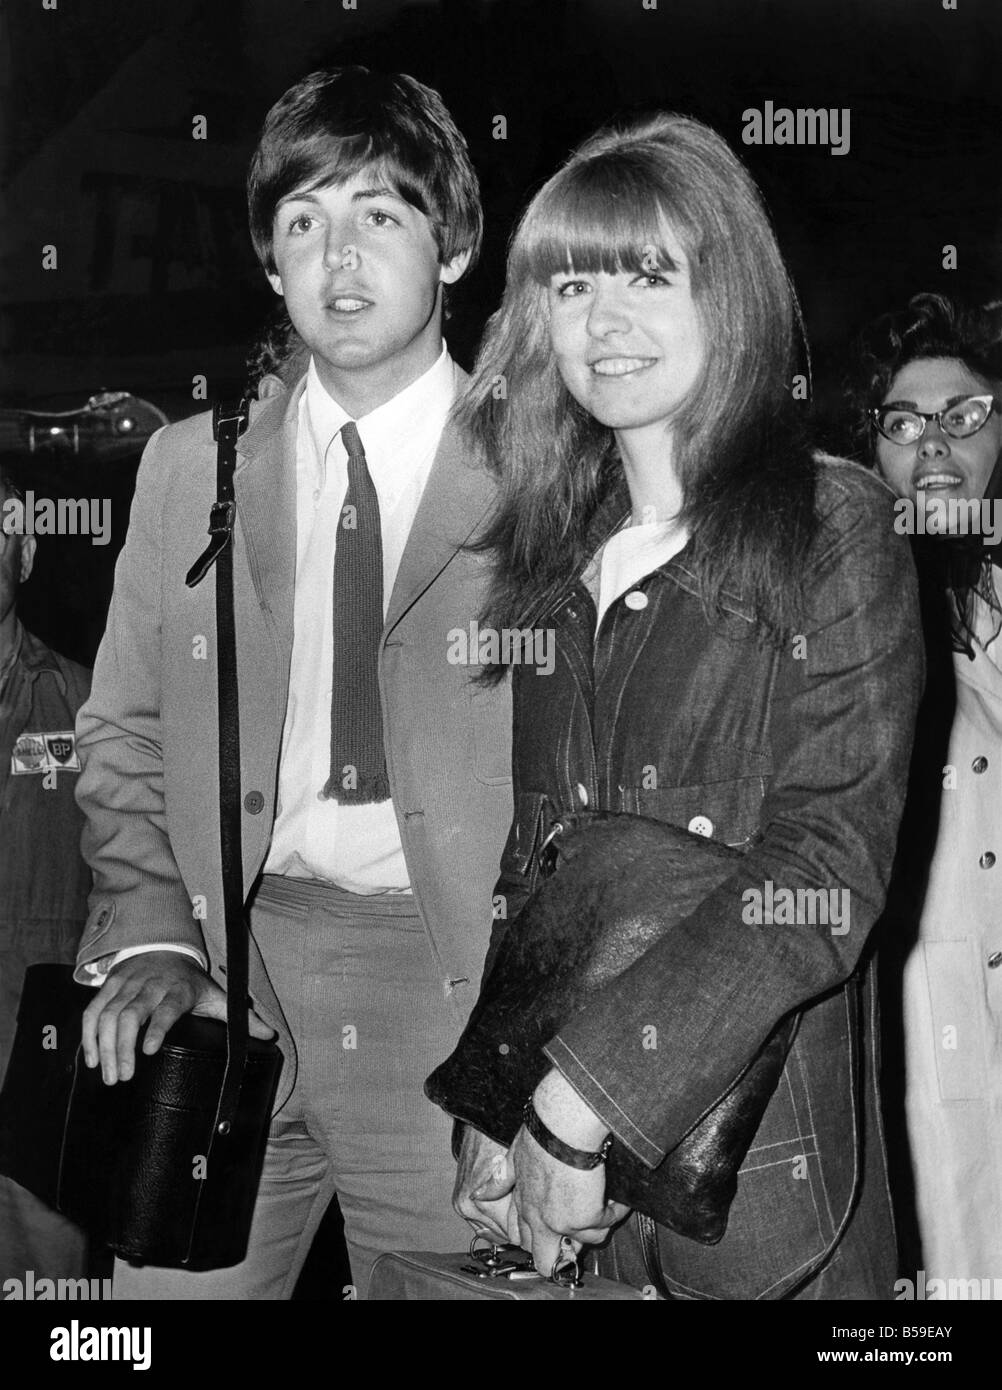 Beatles Pop Group Guitarist And Singer Paul McCartney Jane Asher June 1965 P005115